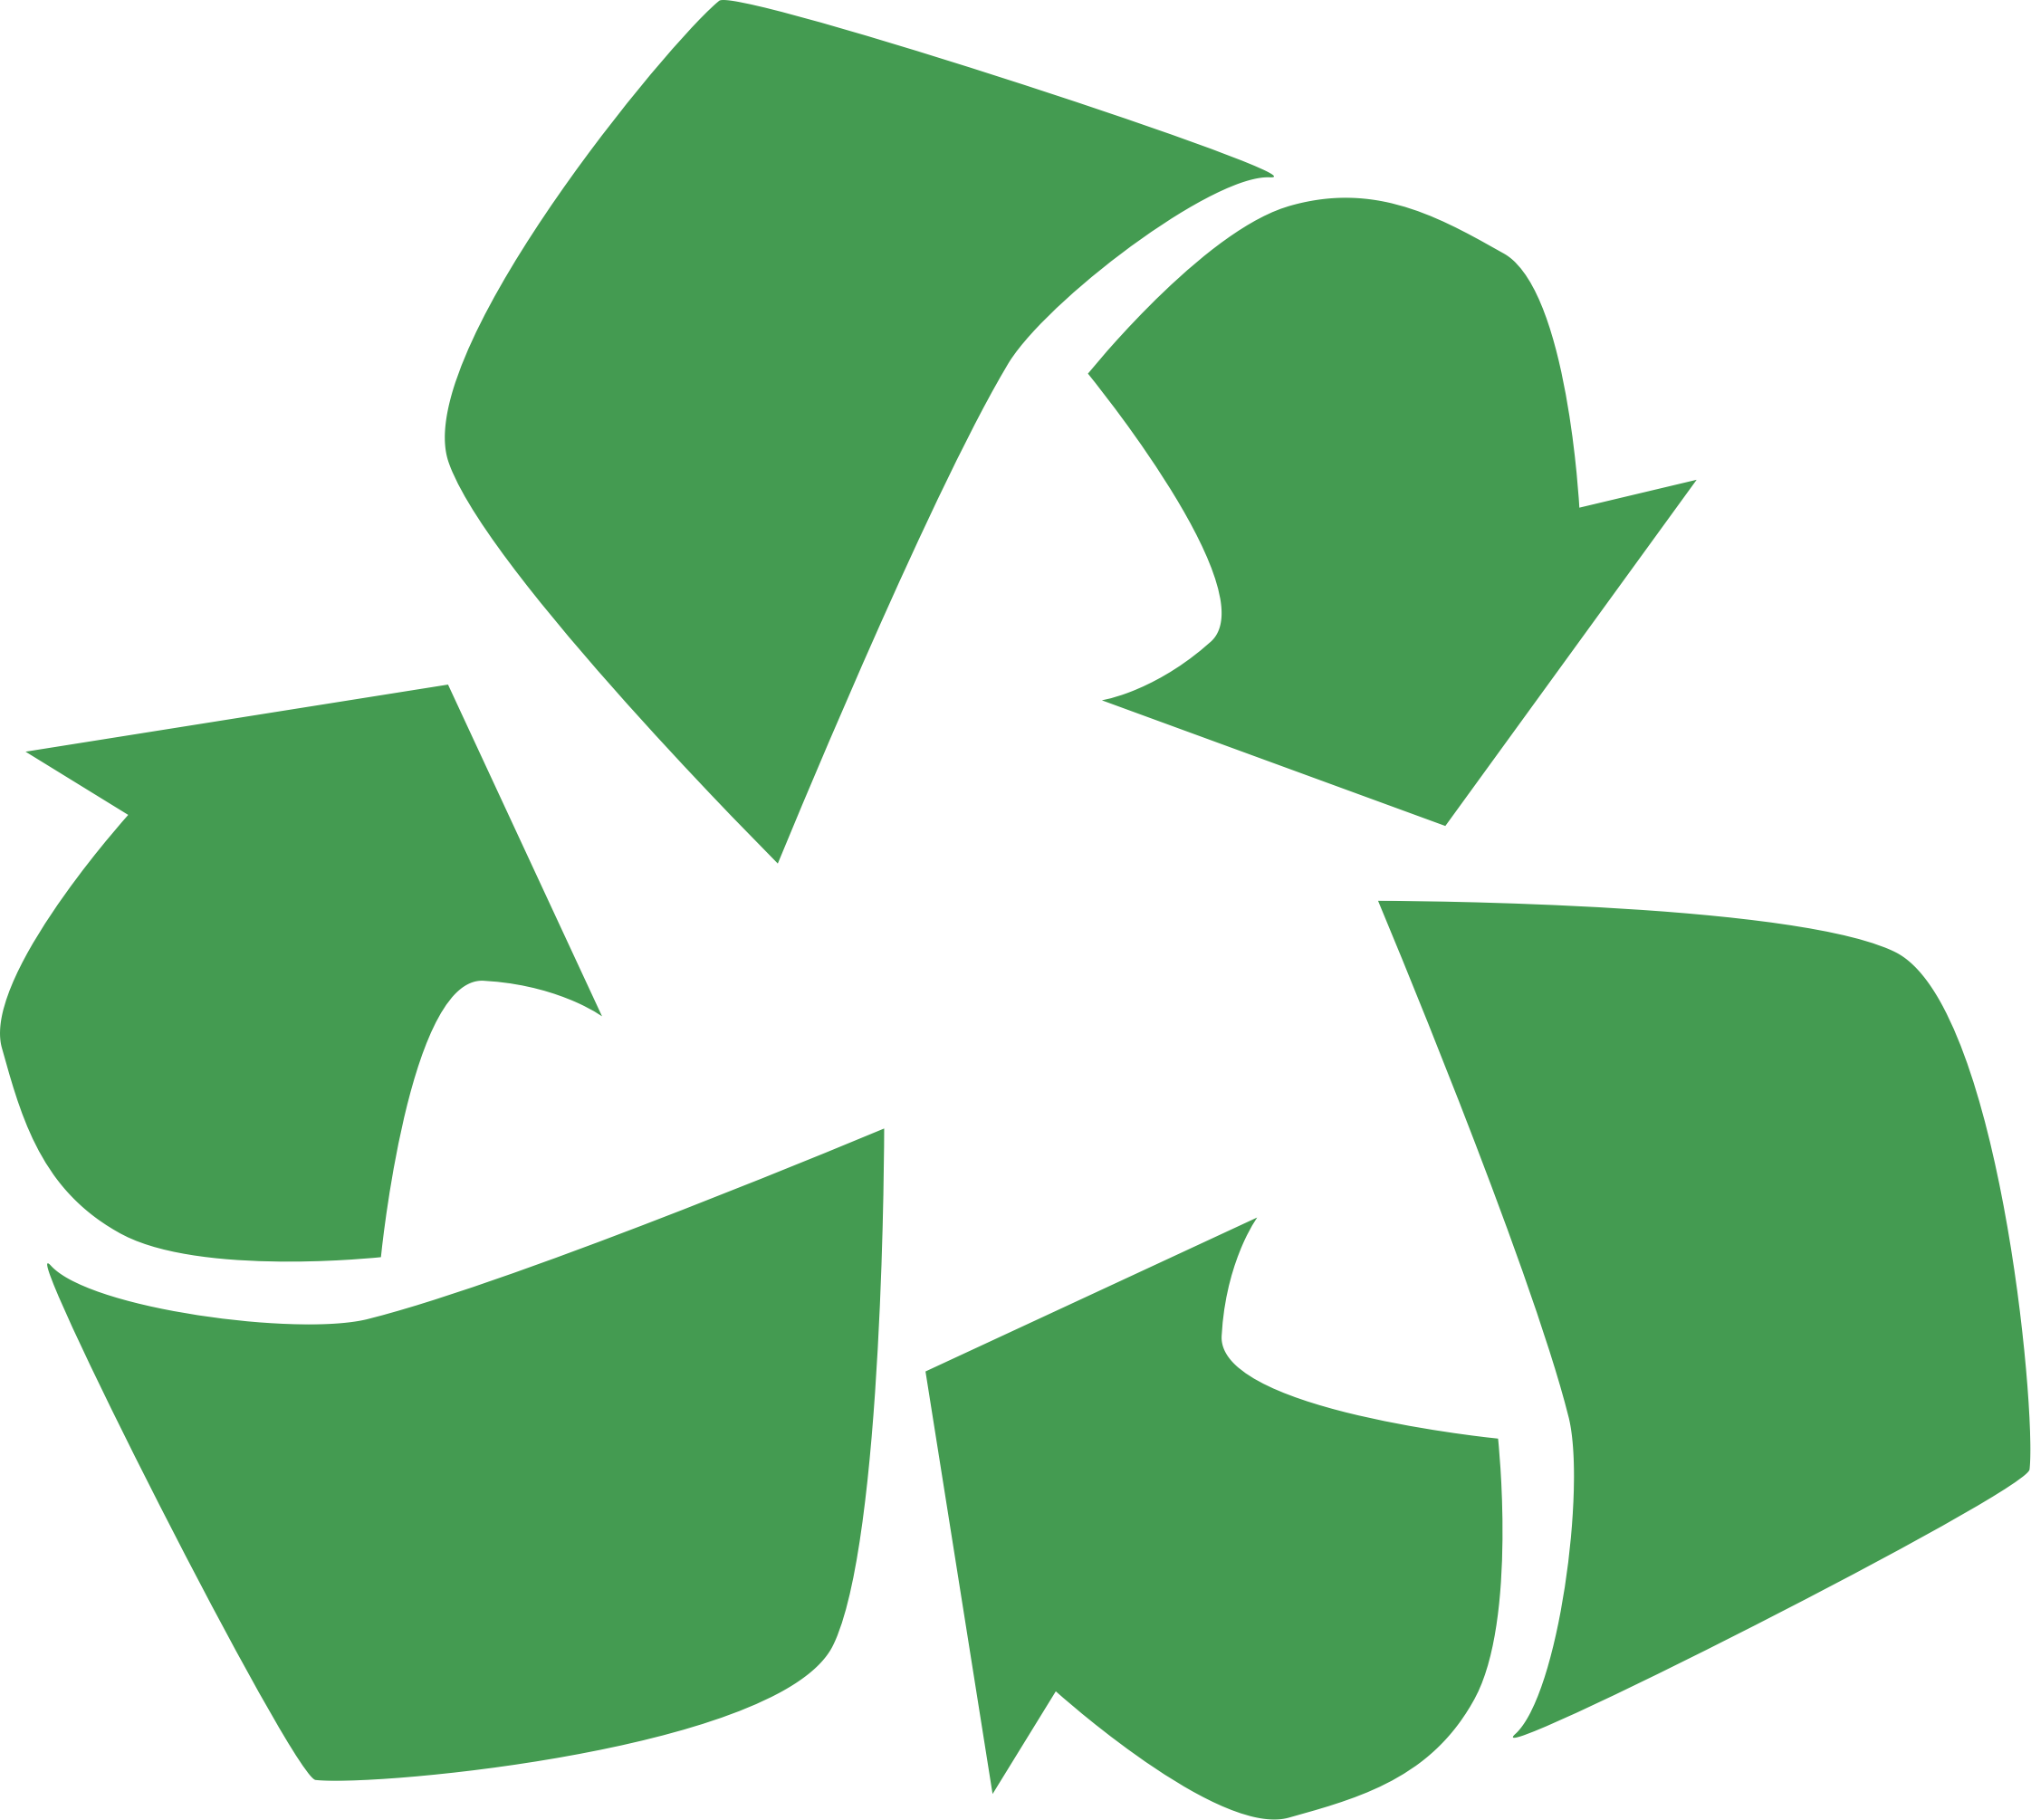 Sign clipart recycling. Recycle symbol big image